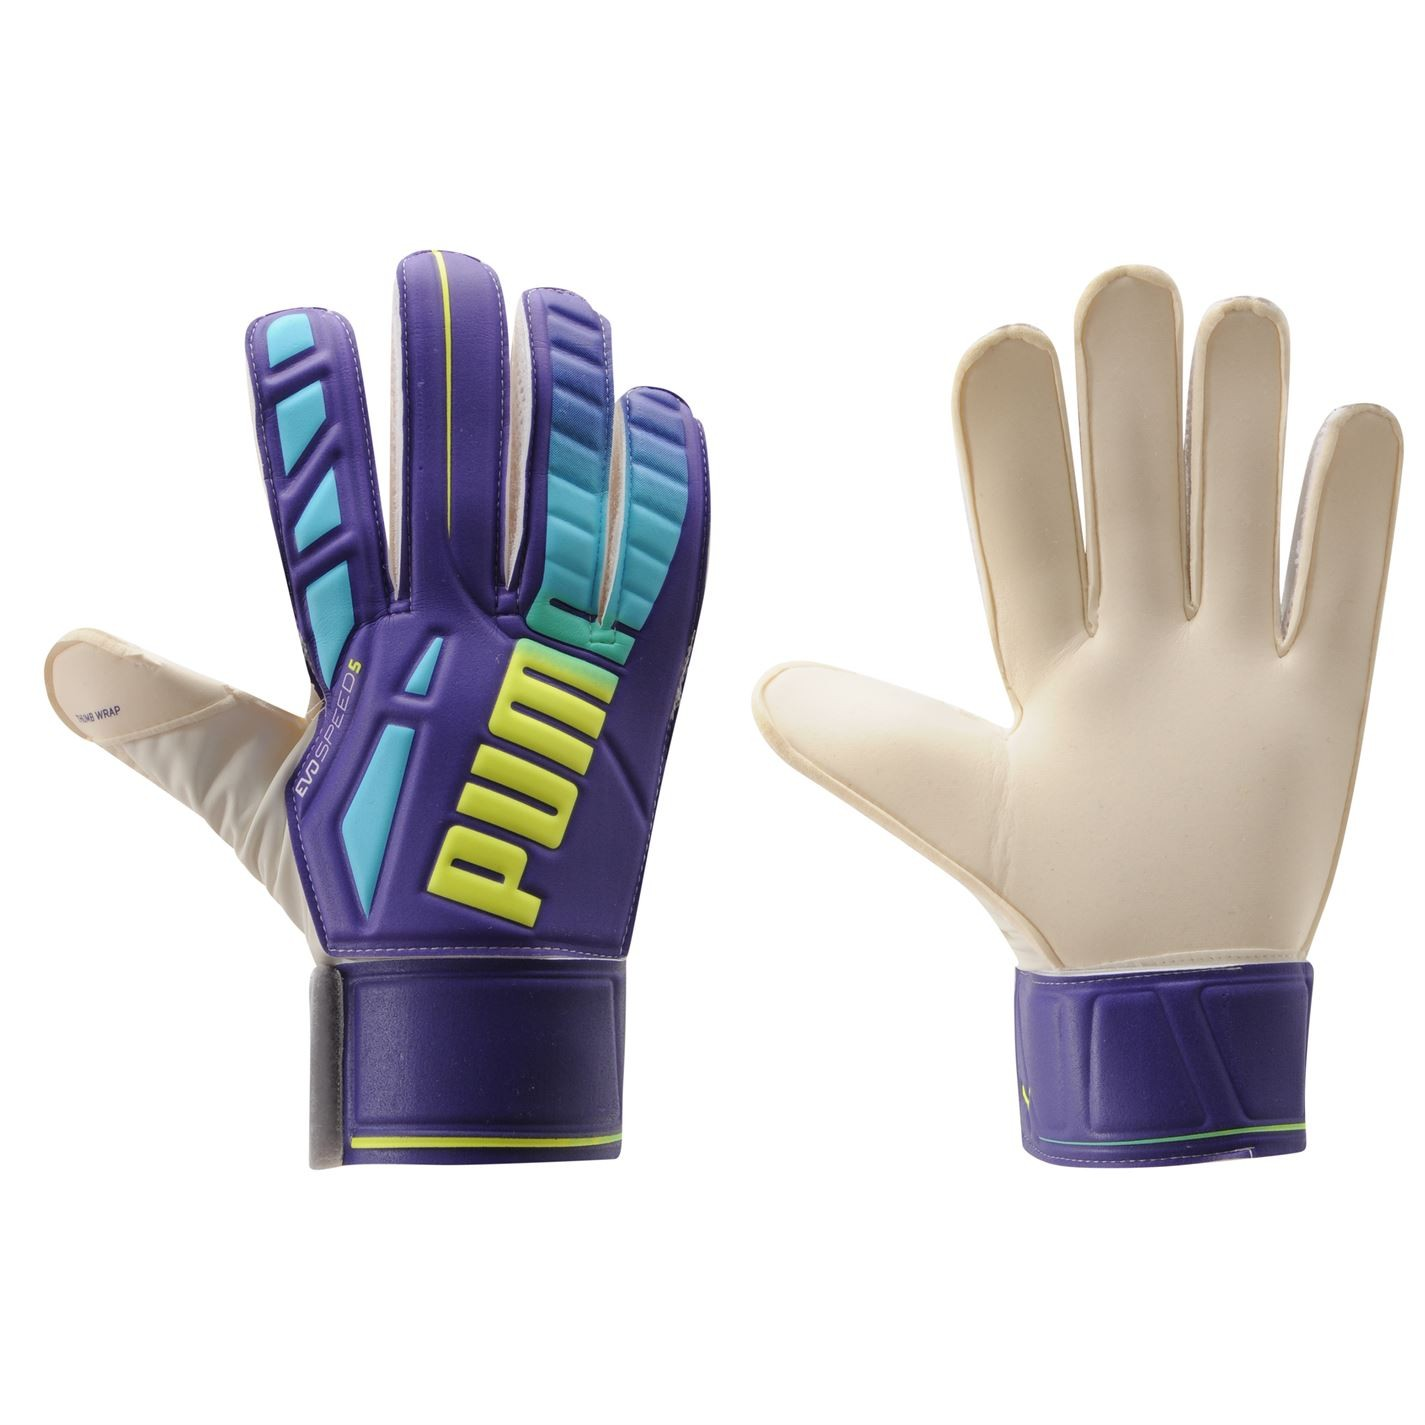 Вратарски ръкавици PUMA EVOSPEED 5 GOALKEEPER GLOVES - PRISM VI 872dadd75468